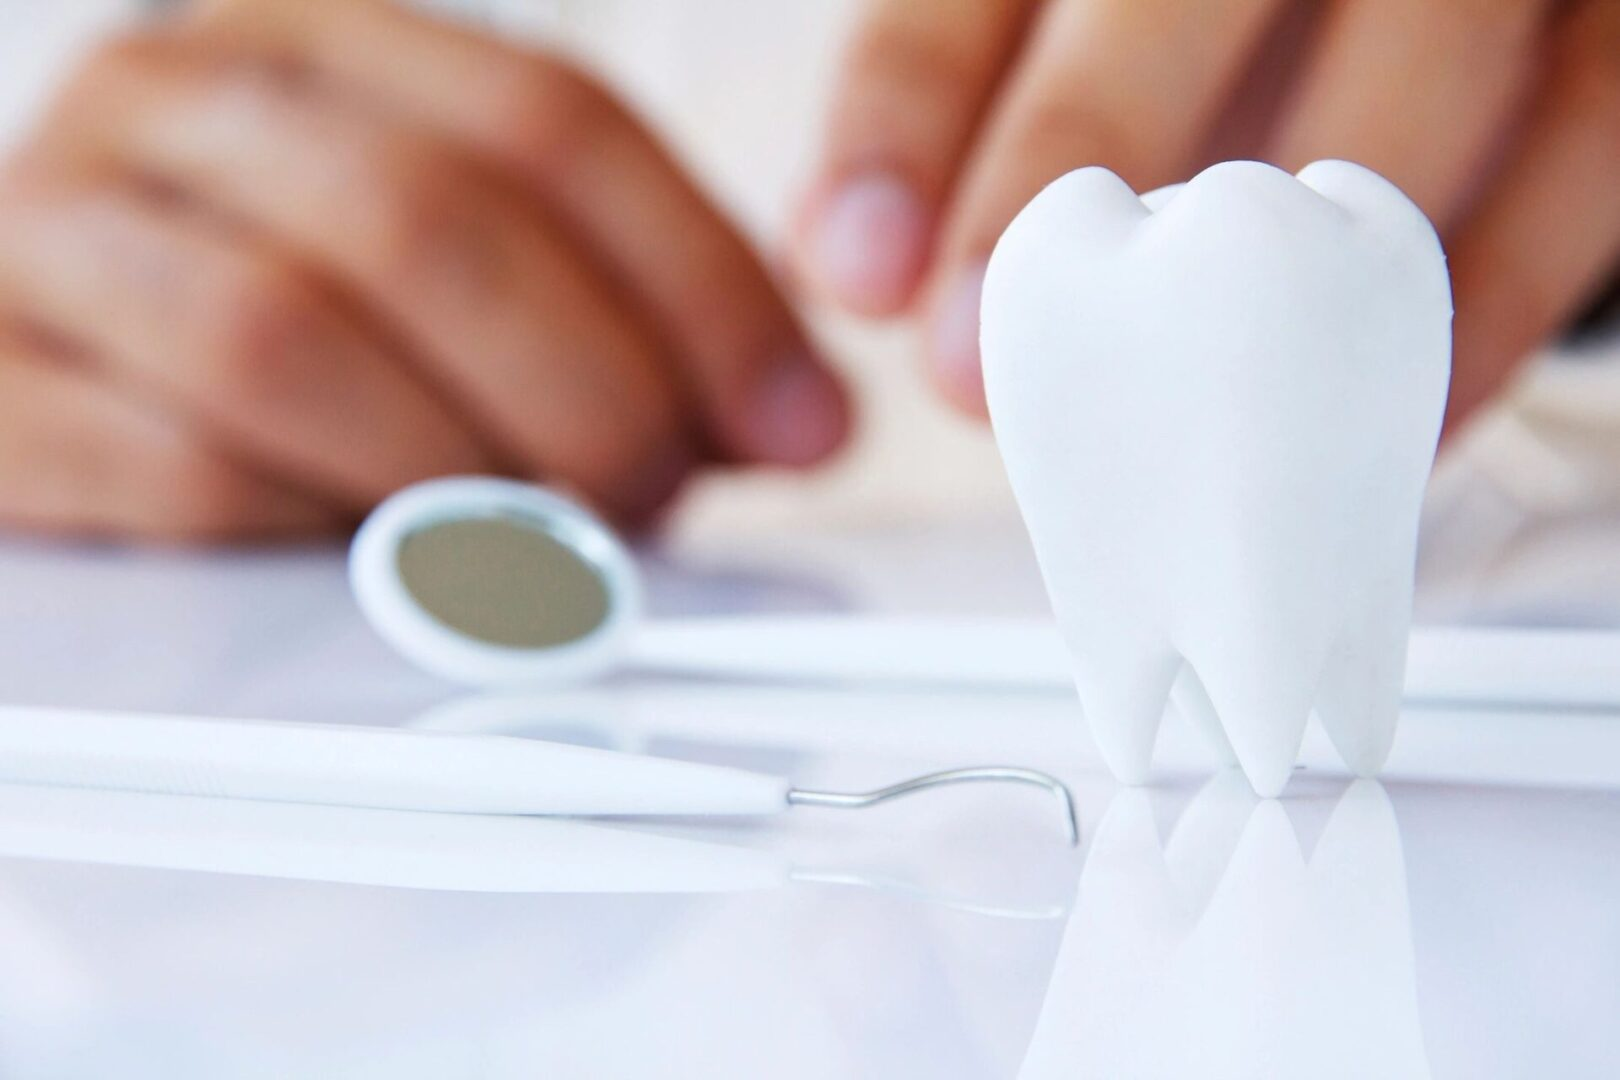 Colombia City Dental